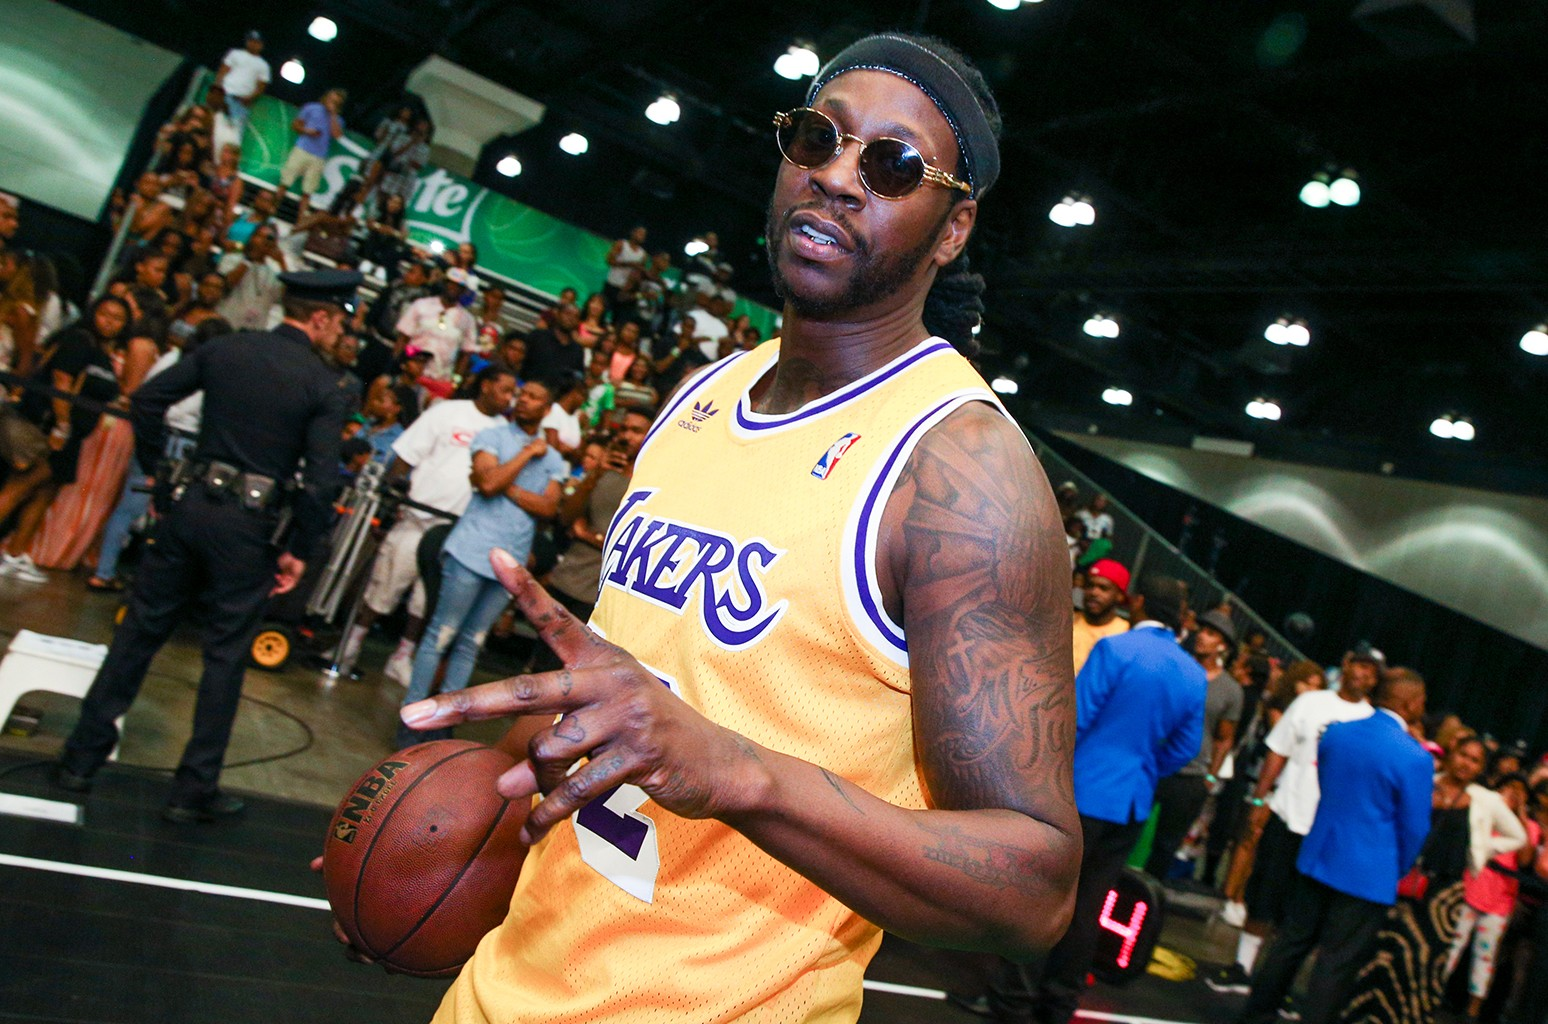 2 Chainz plays in the Sprite Celebrity Basketball Game